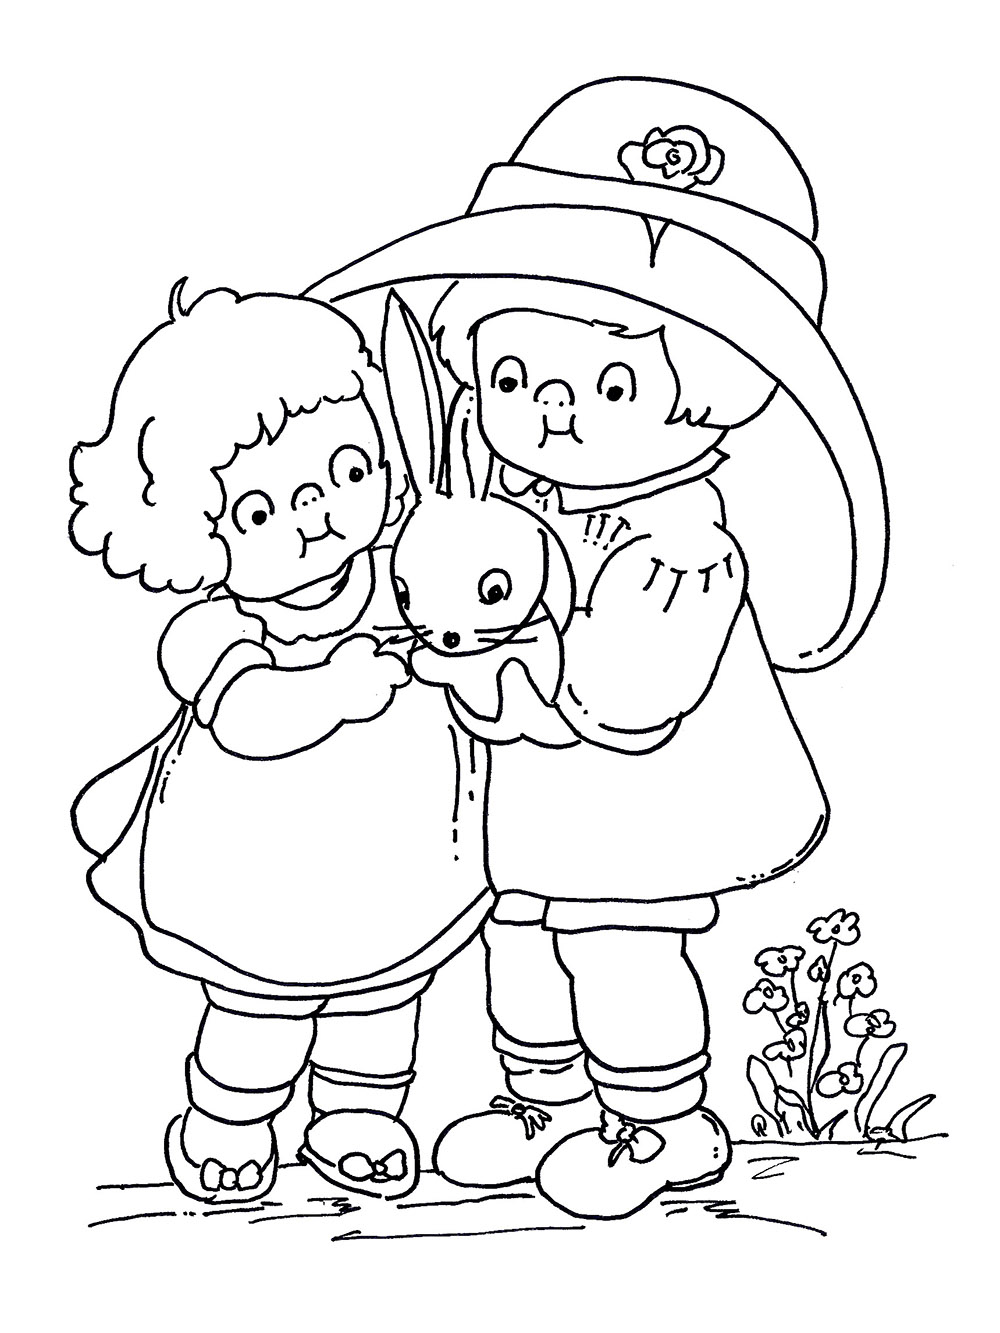 friend coloring pages - friendship day coloring pages only coloring pages